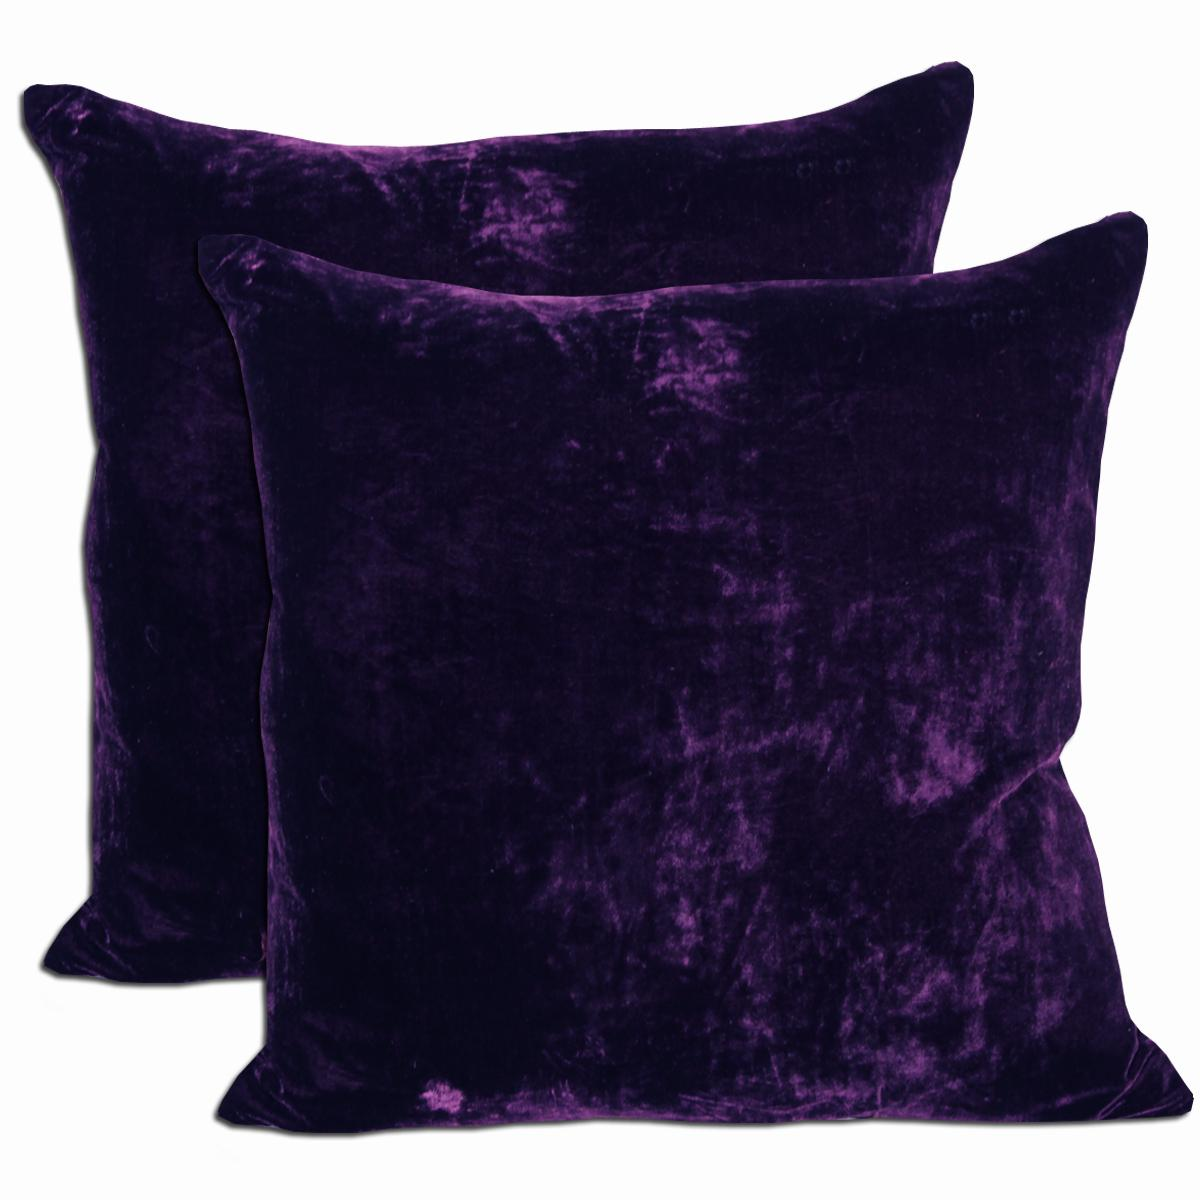 Shop Black Friday Deals On Purple Velvet Feather And Down Filled Throw Pillows Set Of 2 On Sale Overstock 5643394